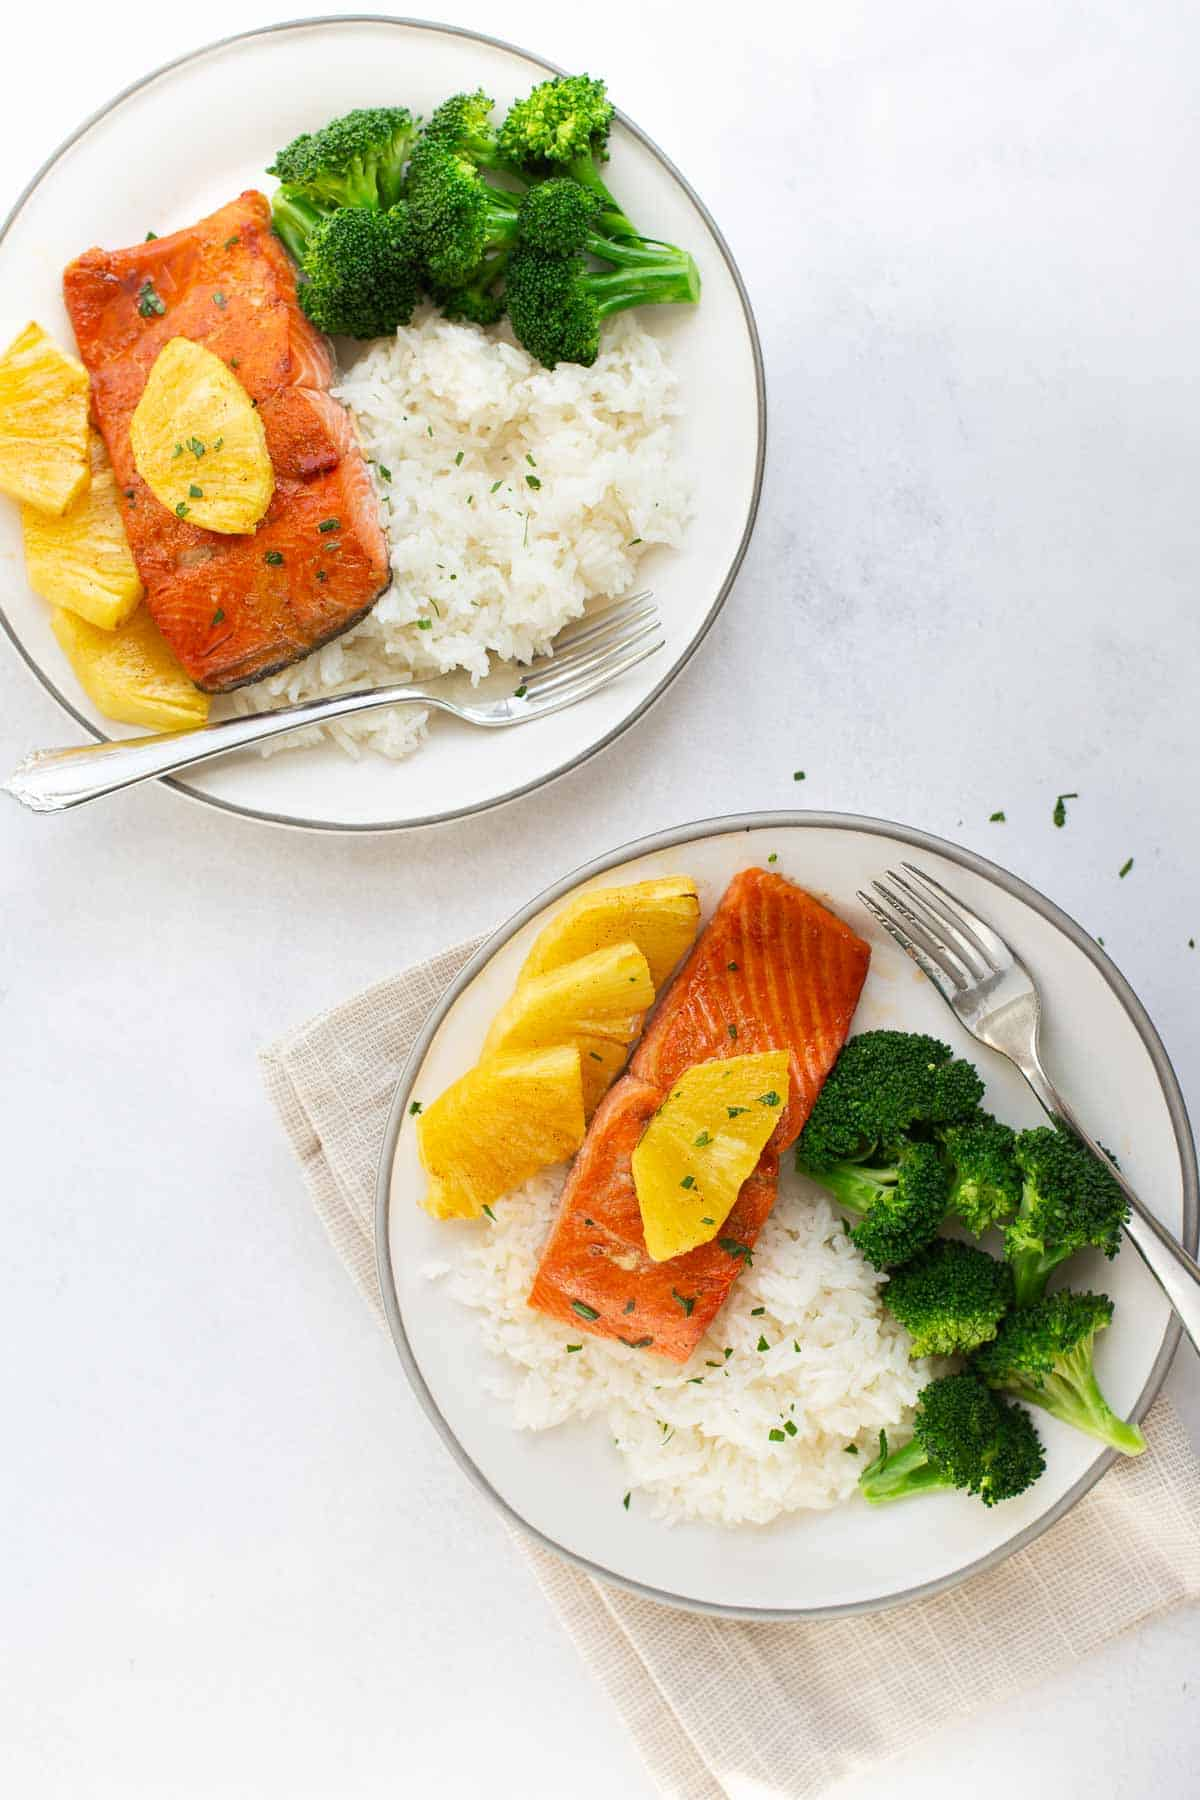 2 dinner plates of pineapple salmon with white rice and steamed broccoli